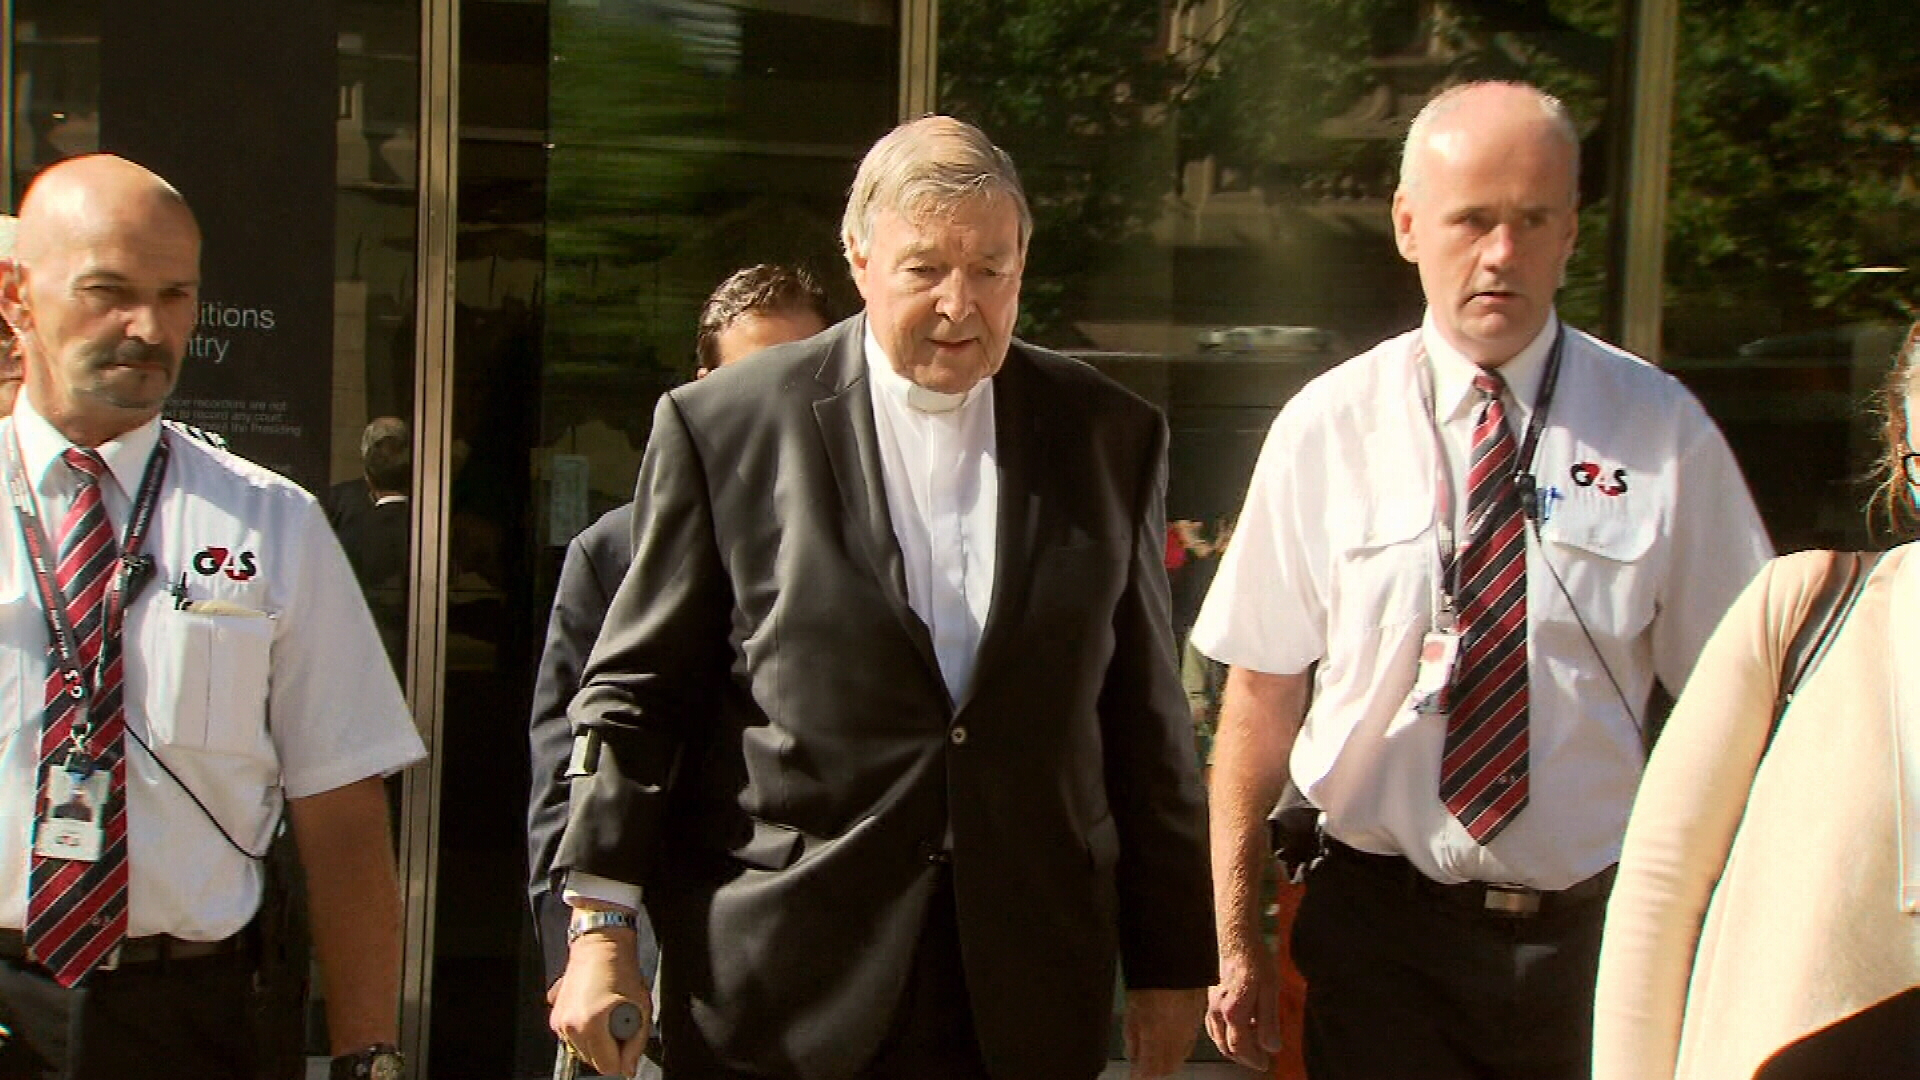 Man who accused cardinal says 'case doesn't define me — George Pell